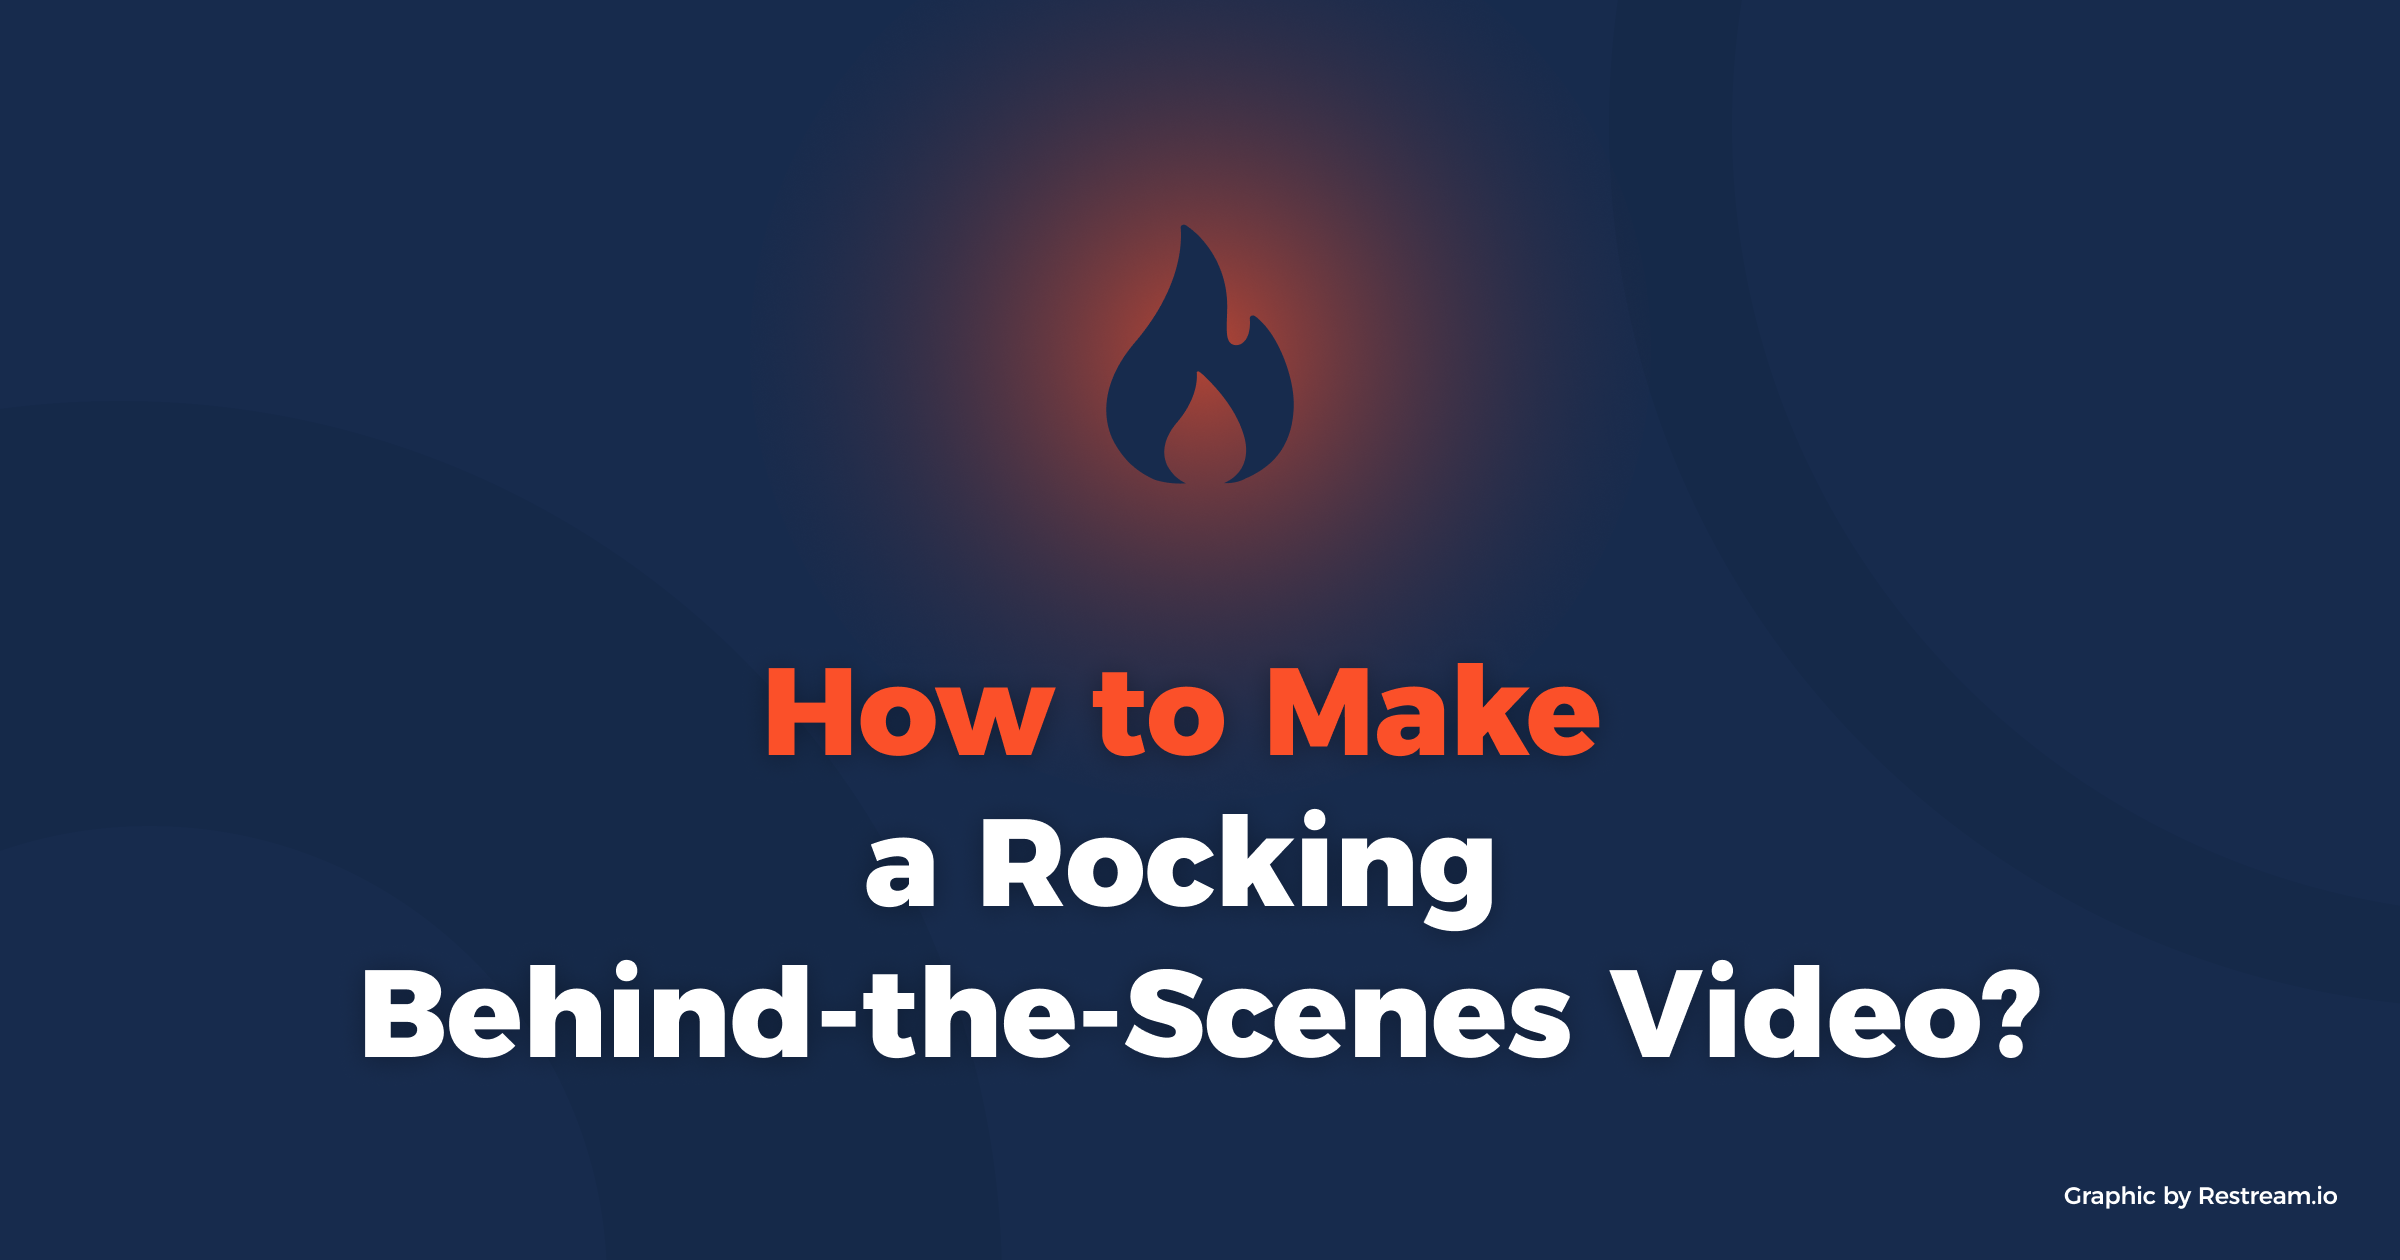 How to Make a Rocking Behind-the-Scenes Video?